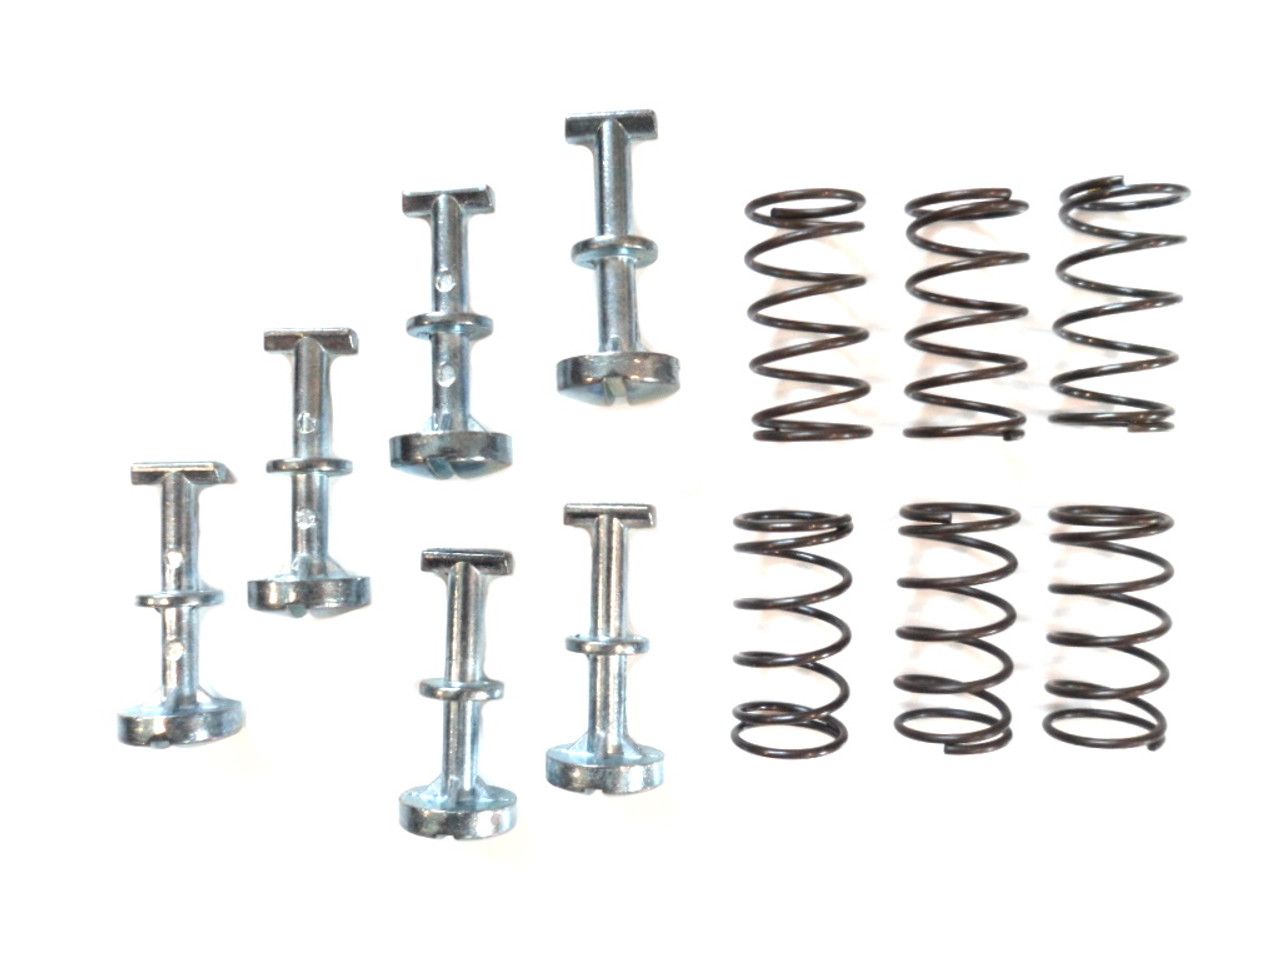 Vespa Piaggio Si, Bravo / Kinetic Moped Side Cover Mounting Bolt Kit